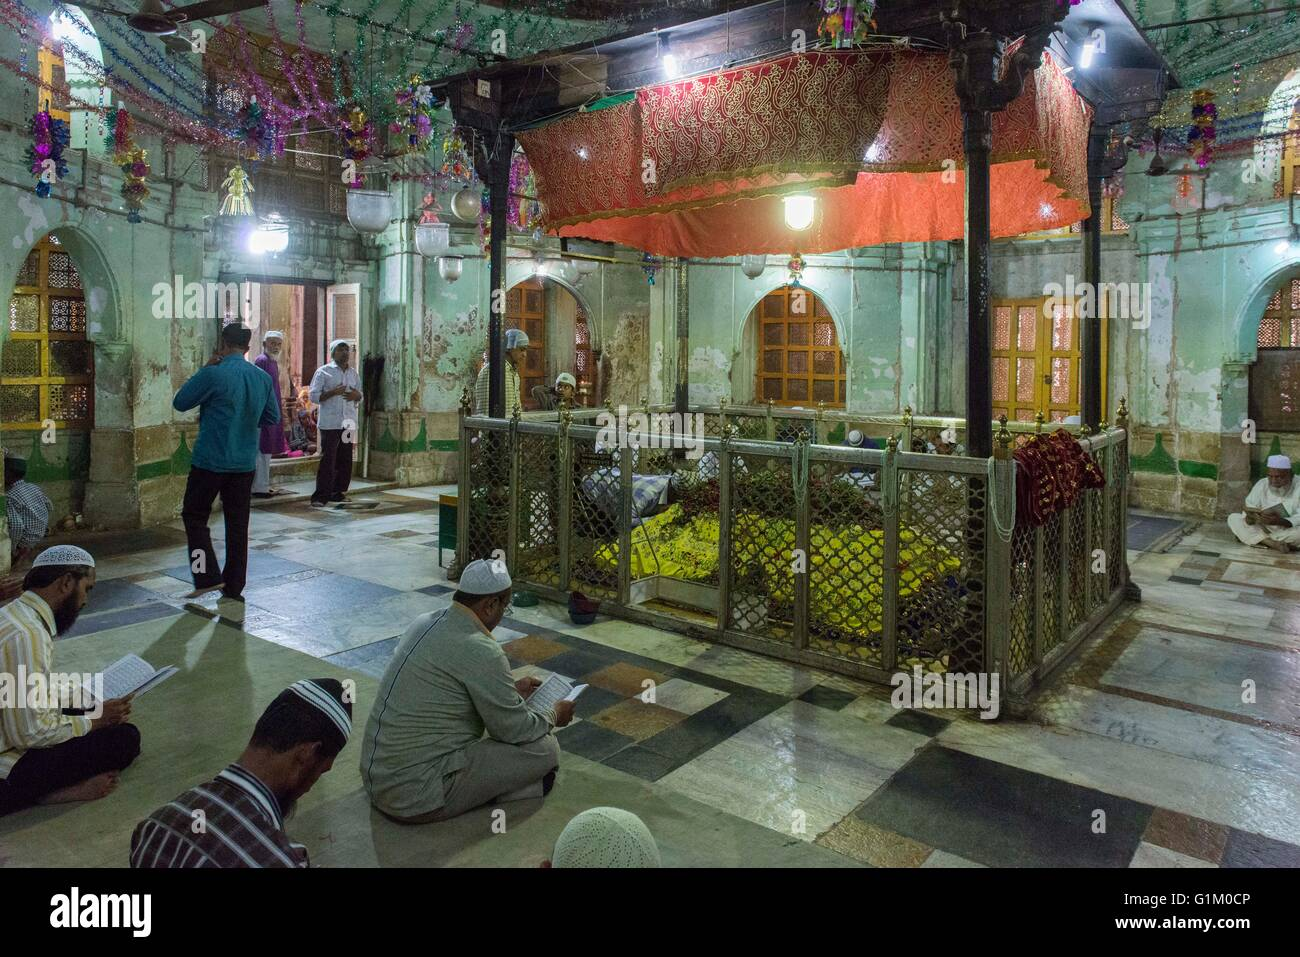 Inside Shrine, Sarkhej Roza, Ahmedabad - Stock Image